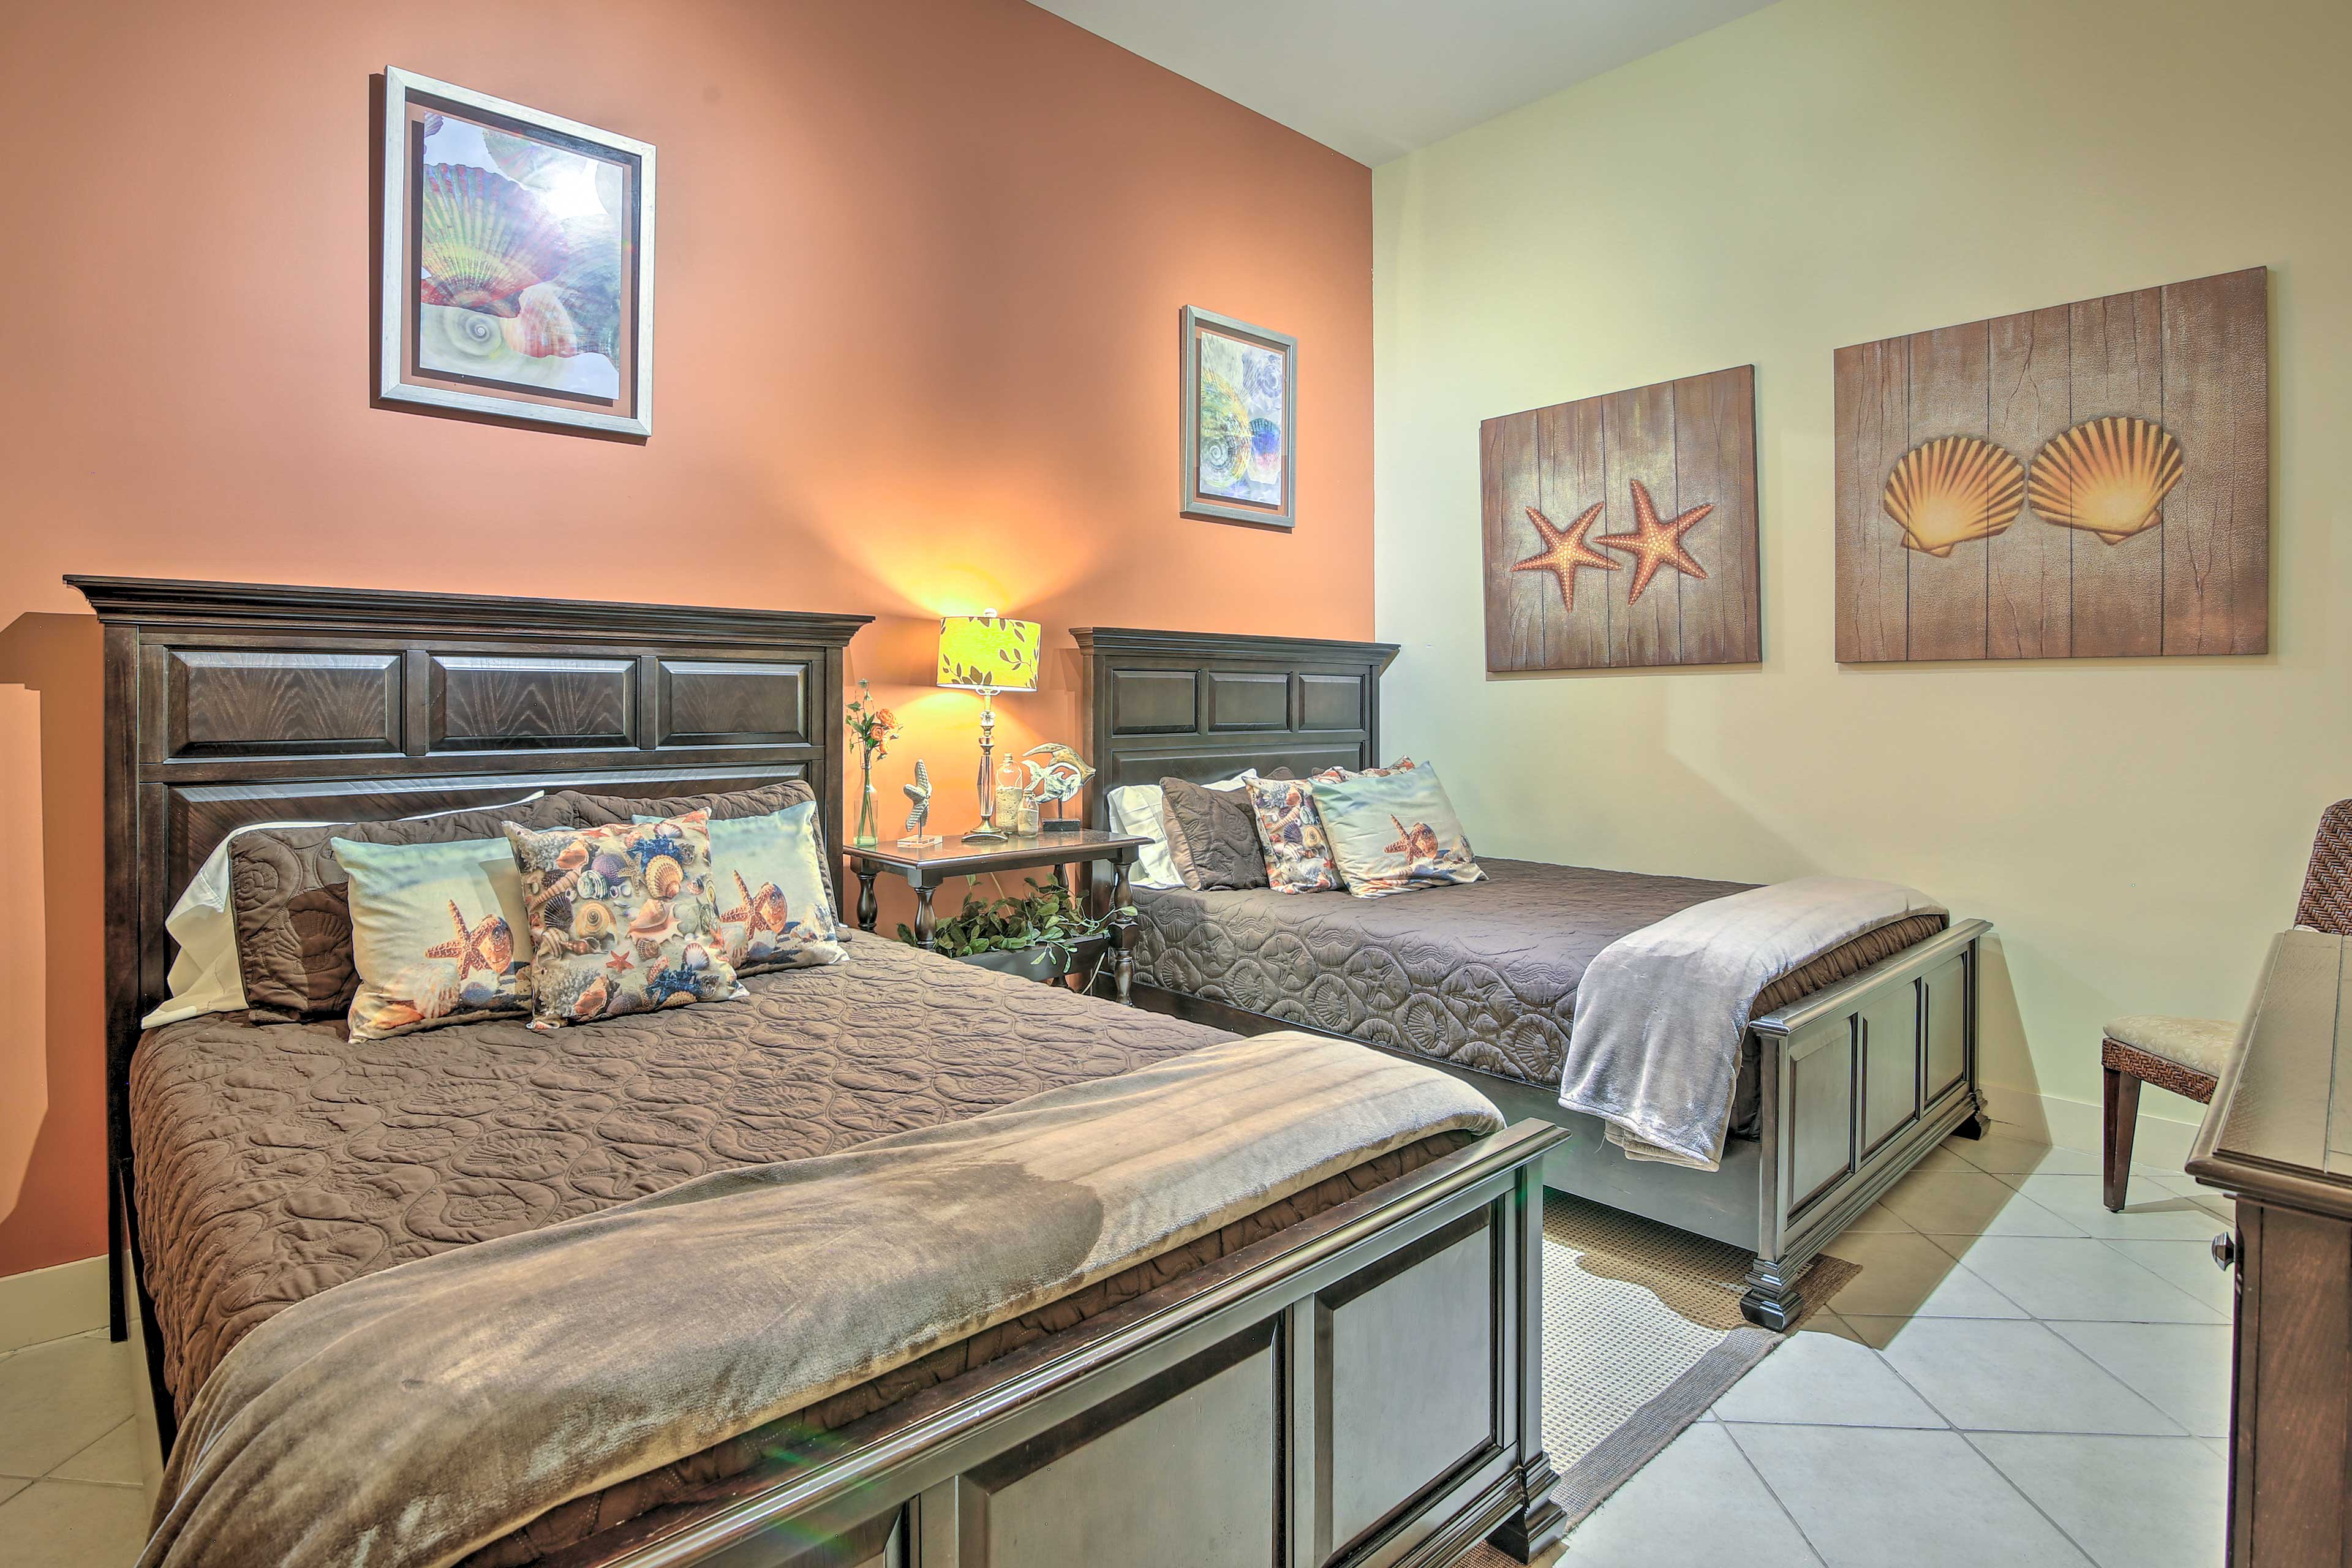 Take your pick of one of two queen beds in this bedroom.